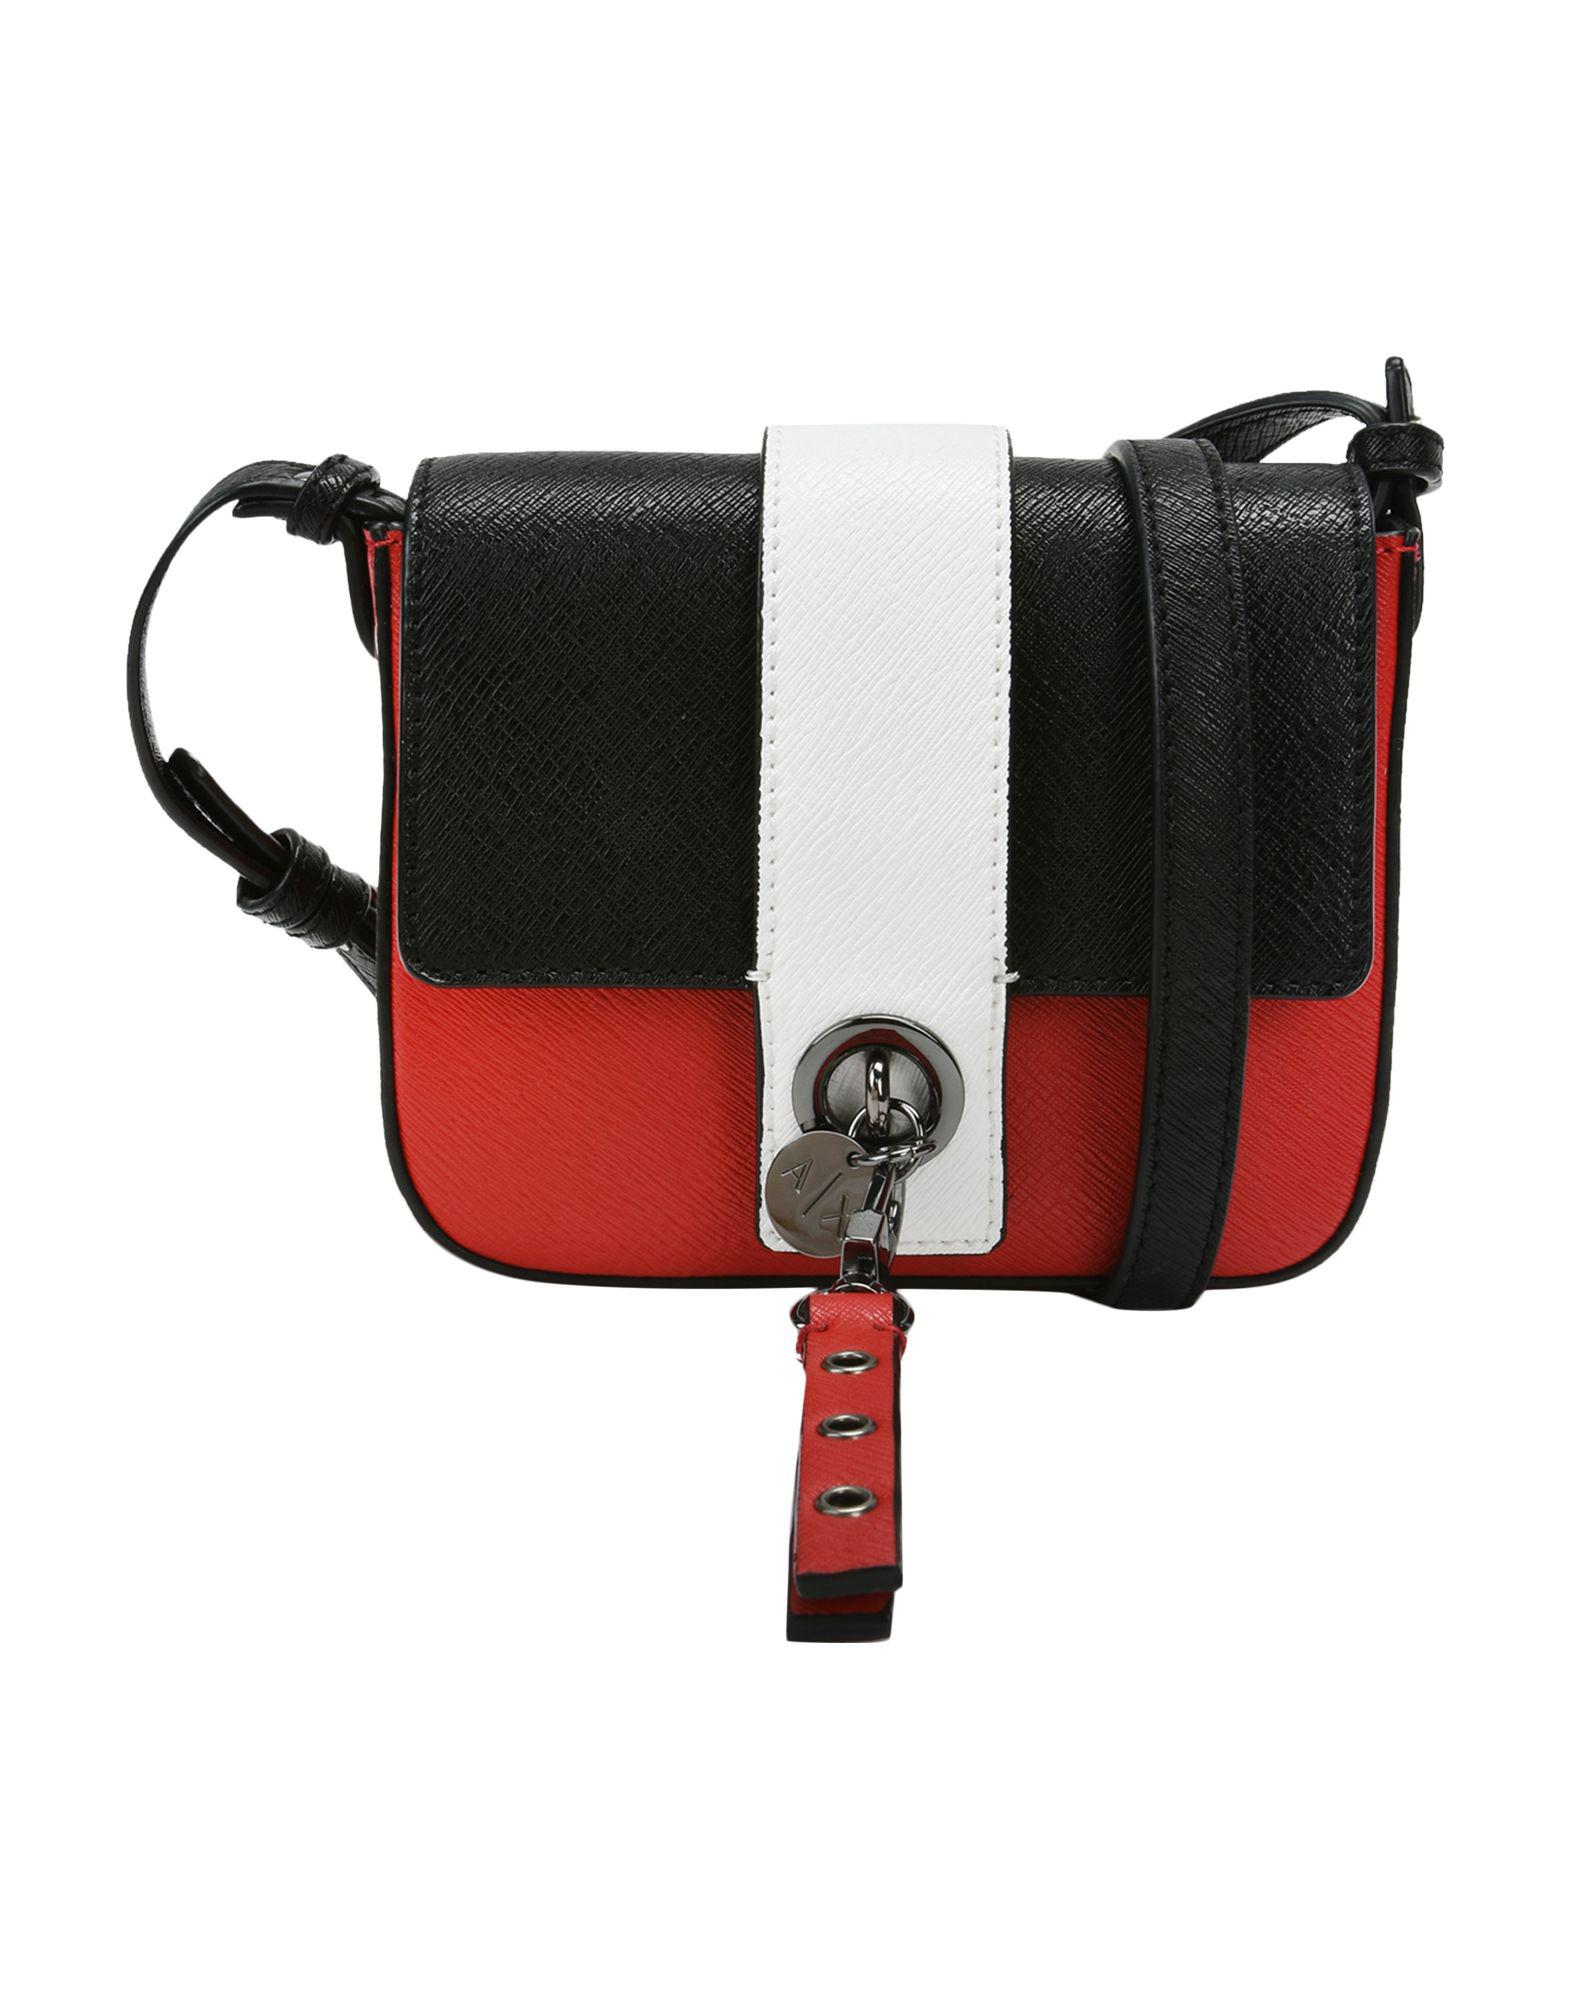 Armani Exchange Cross-body Bag in Red - Lyst 6af9e78666